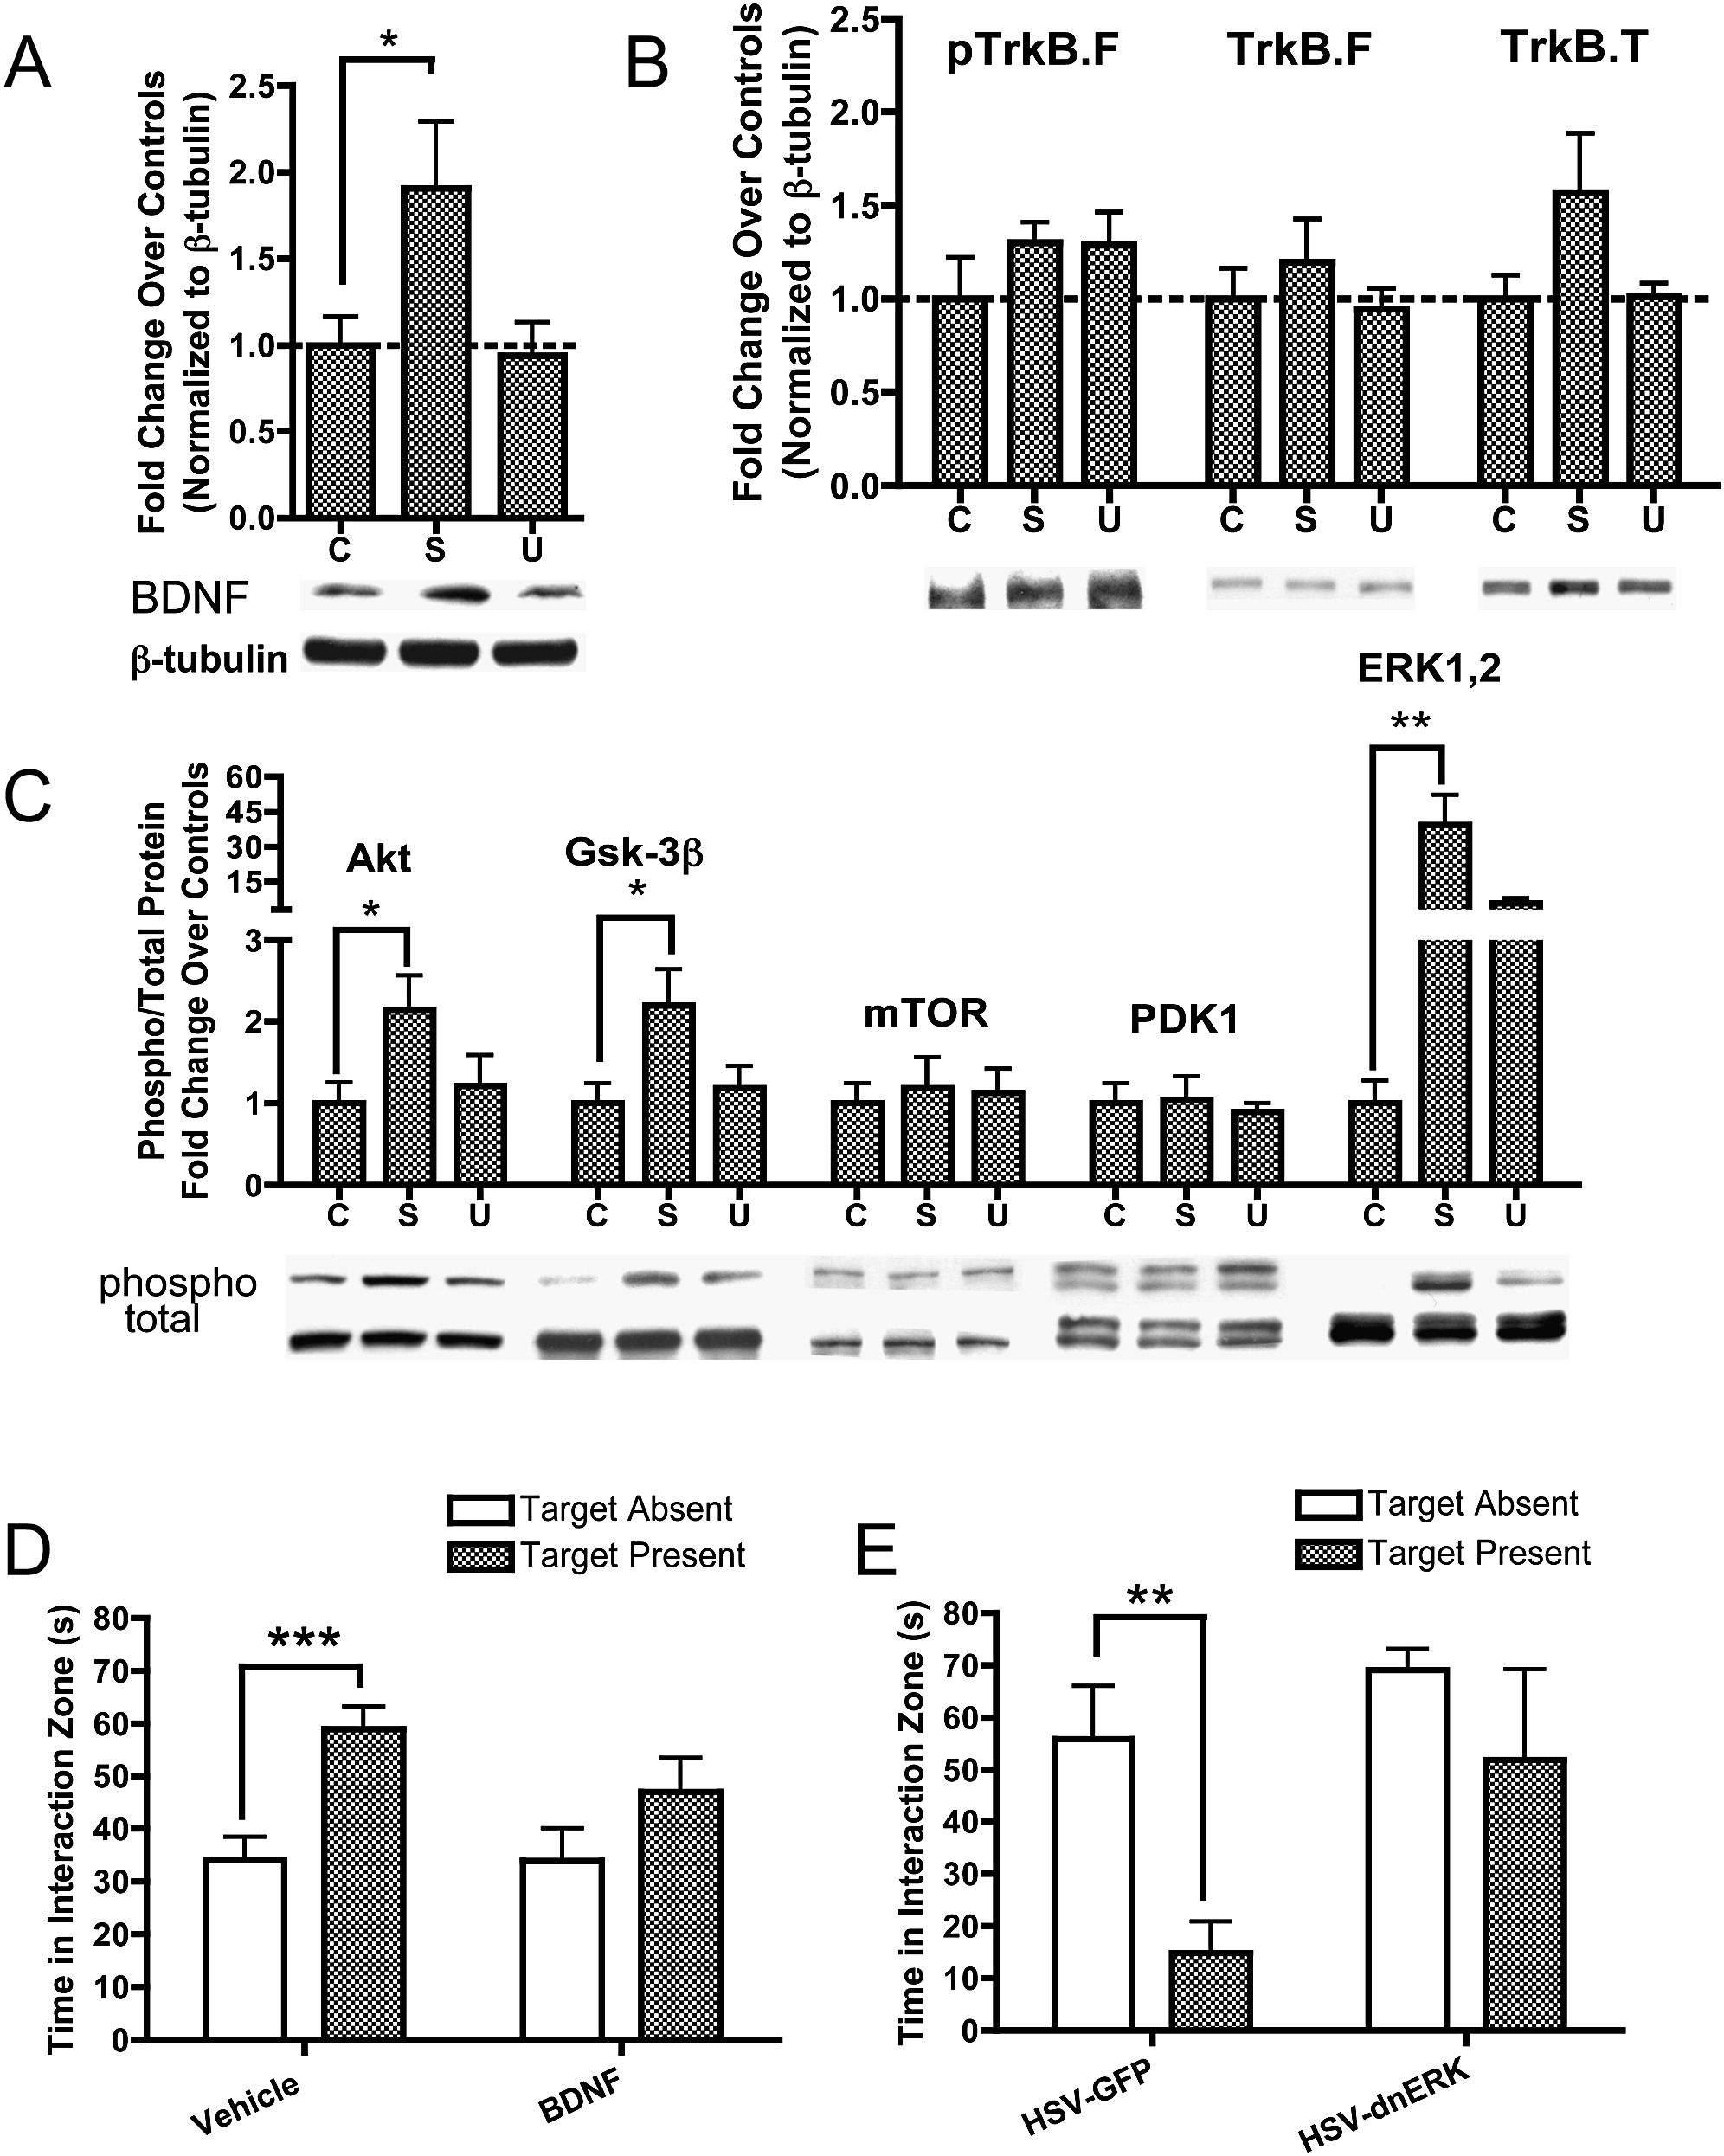 Molecular Adaptations Underlying Susceptibility And Resistance To Social Defeat In Brain Reward